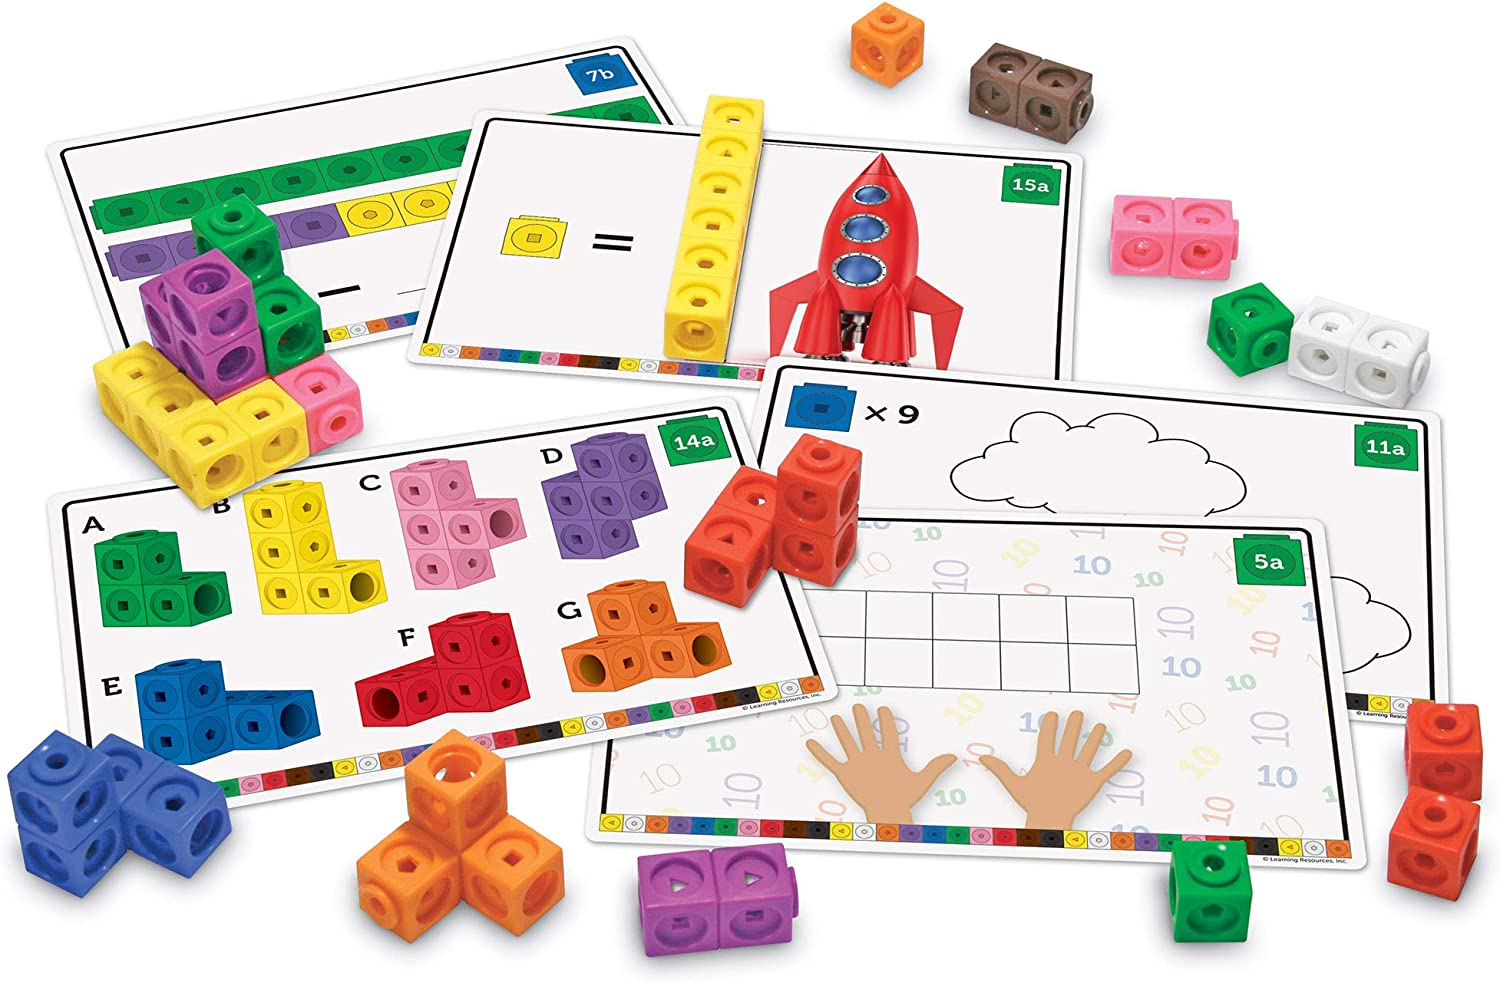 learning resources early math mathlink cube activity set math manipulatives for kindergarteners